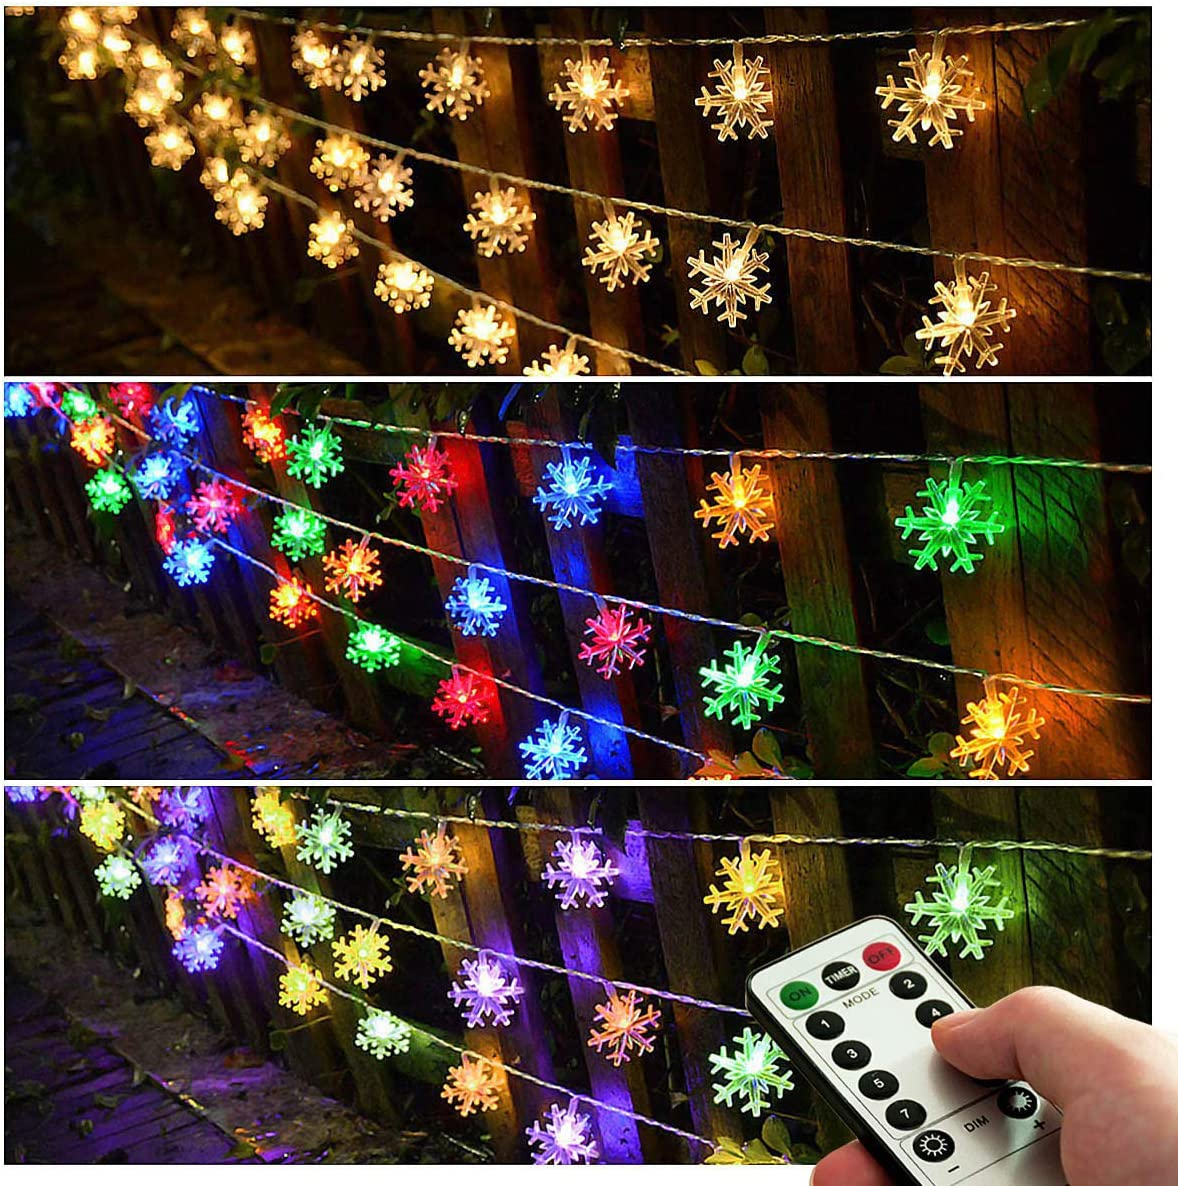 Homeleo Multicolor Changing LED Snowflake Decorations,Battery Operated Christmas Fairy Lights, Light up Snowflake Ornaments for Christmas Tree, Party, Wedding, New Year Decor 25ft.50Leds